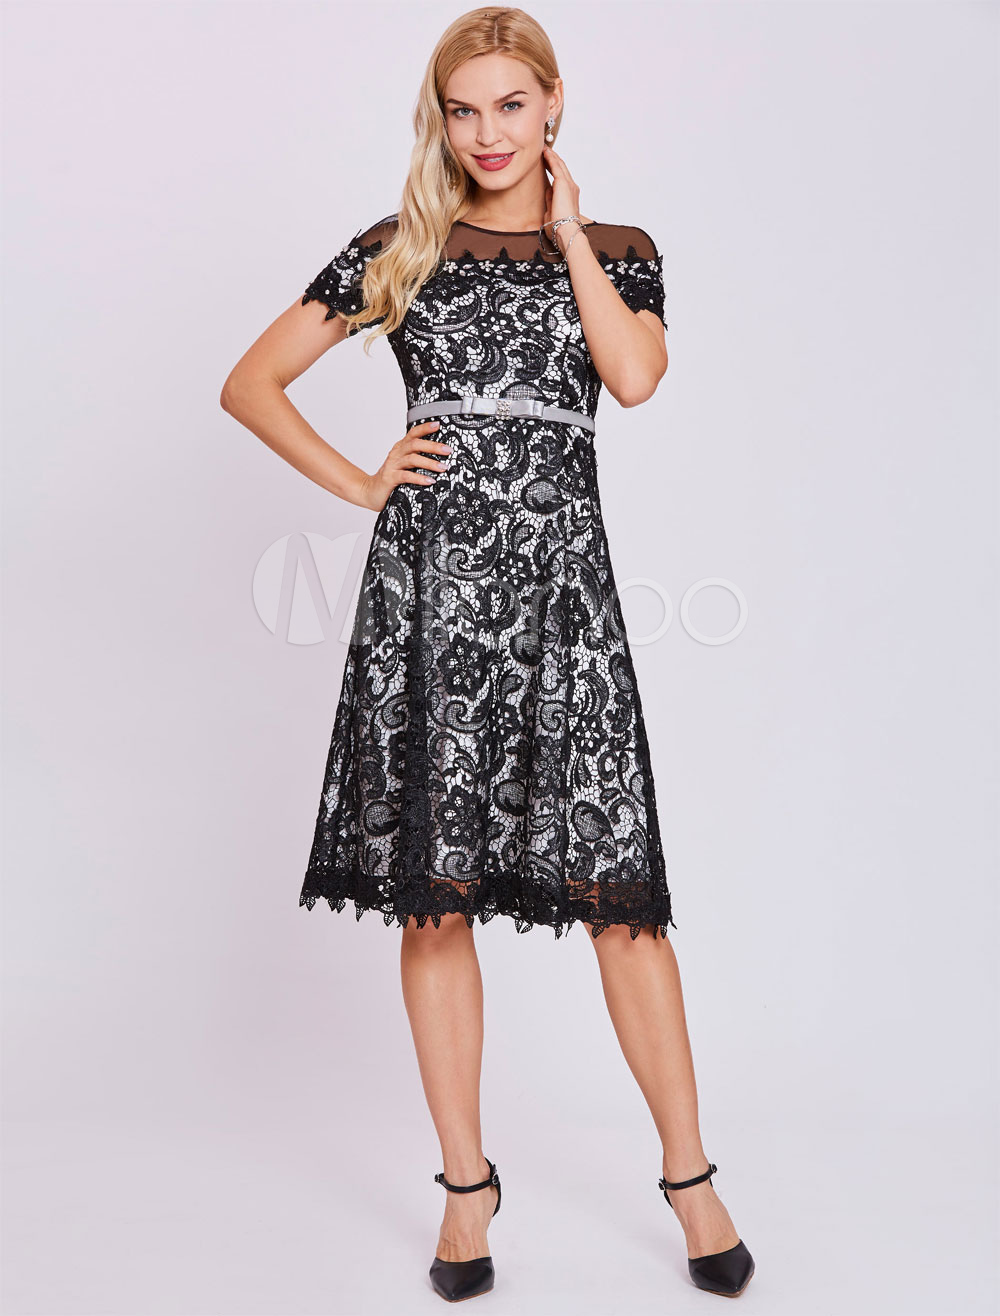 Buy Lace Cocktail Dresses Black Short Sleeve Bow Sash Illusion Knee Length Formal Party Dresses for $83.59 in Milanoo store